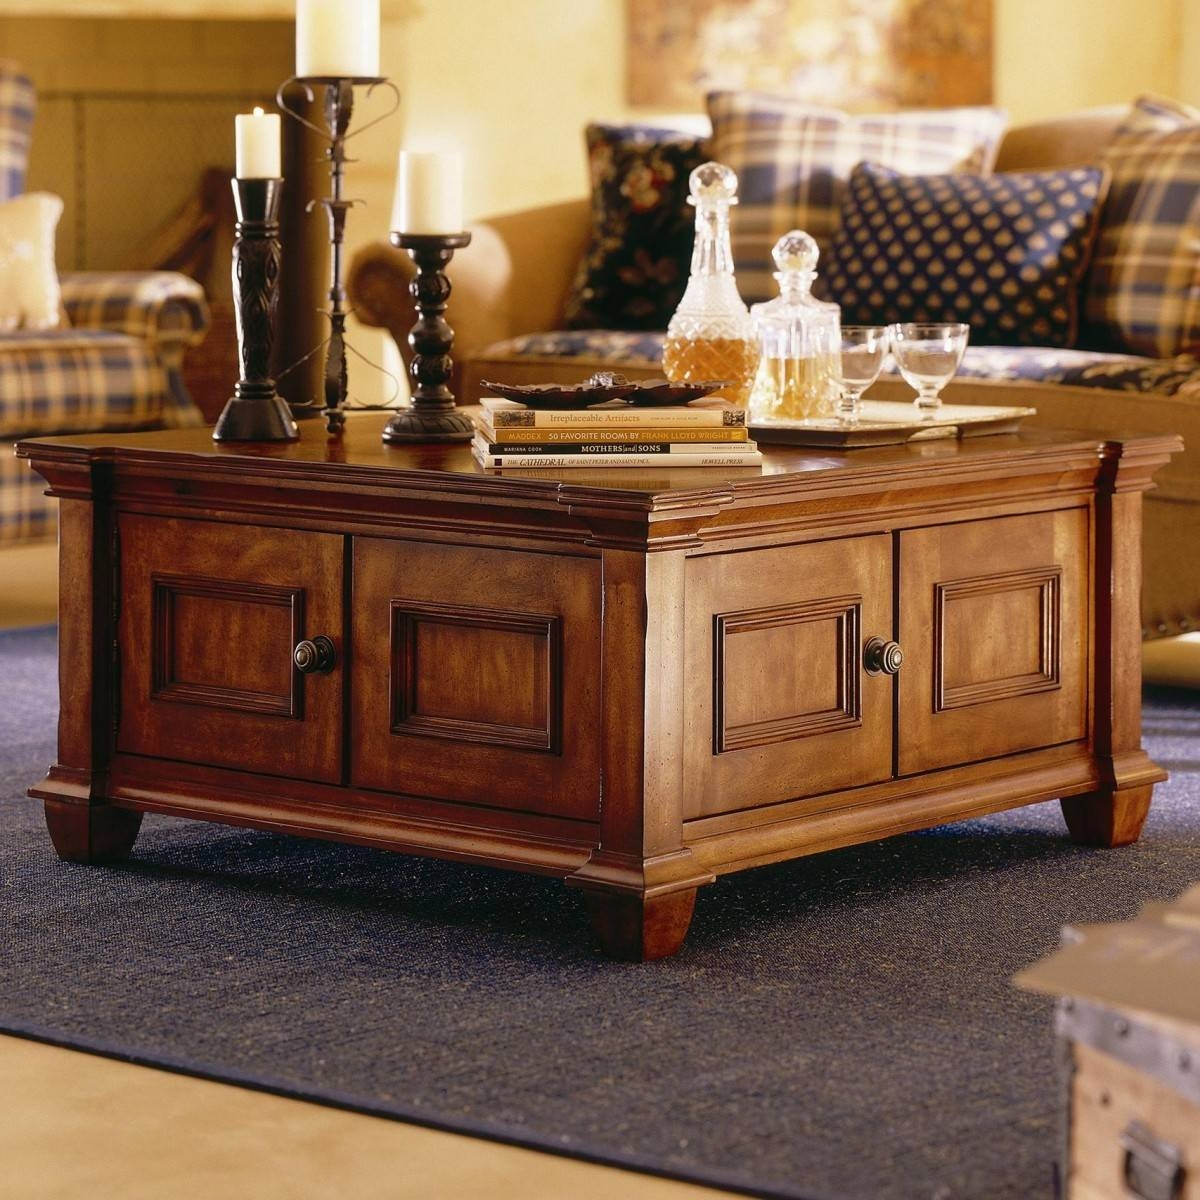 Excellent Square Coffee Tables With Storage Pictures Decoration within Square Oak Coffee Tables (Image 8 of 30)